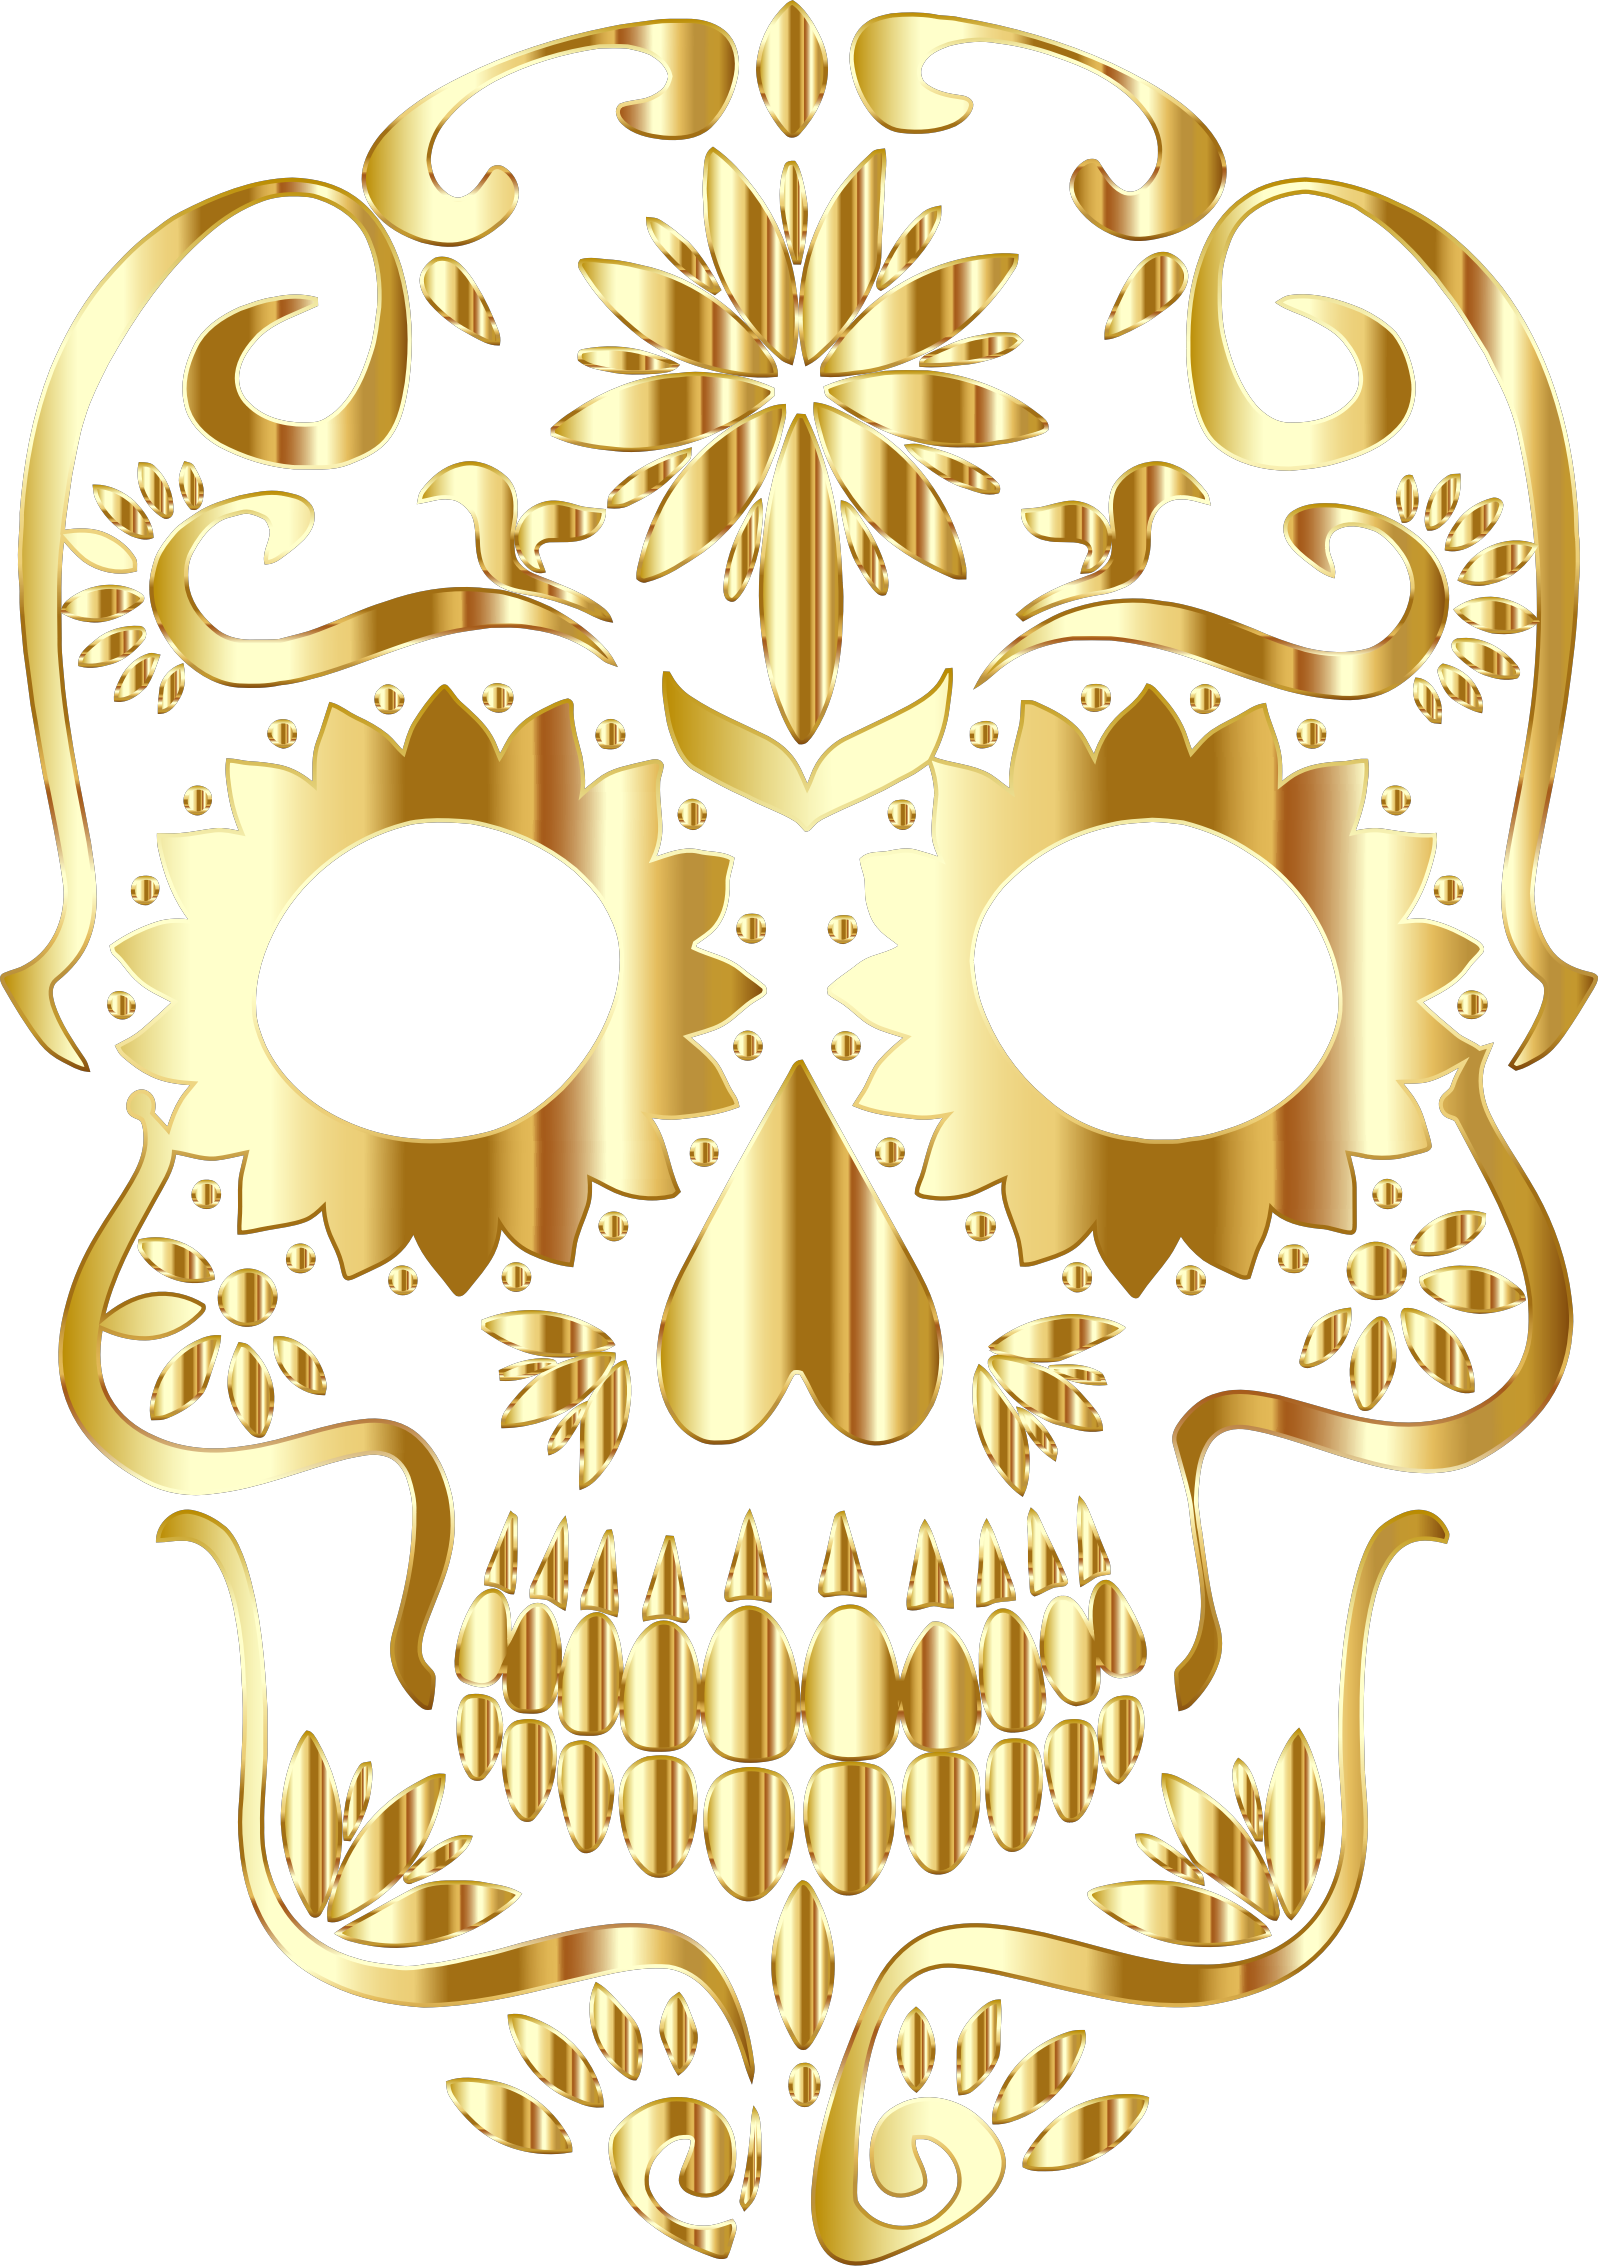 Gold Sugar Skull Silhouette No Background by GDJ